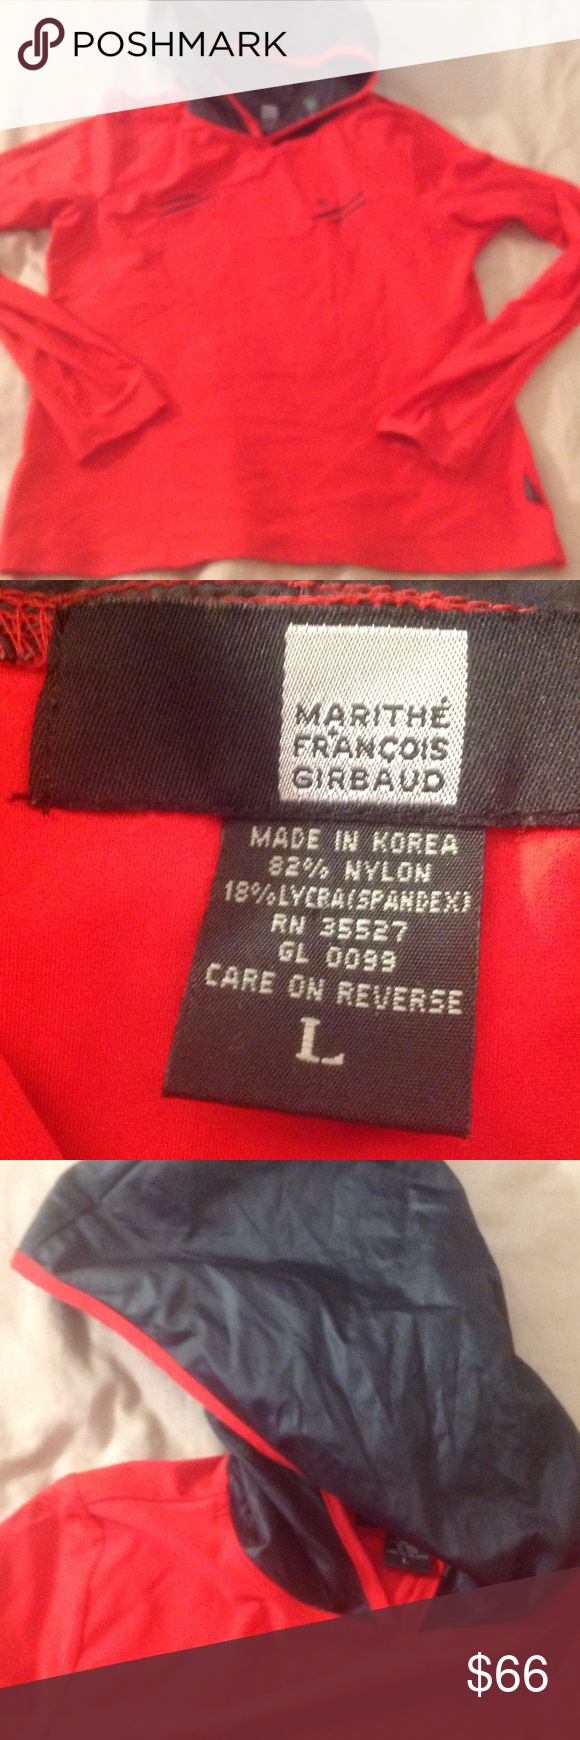 CHIC RARE VINTAGE MARITHE FRANCOIS GIRBAUD Such an awesome piece by Designer MARITHE FRANCOIS GIRBAUD in excellent new condition size L but it would fit me at a size medium this is no t a loose fit. Would be great for a junior as well. I love it. It is so chic!! One of a kind. The hood is raincoat material the red is a vibrant gorgeous color Tops Sweatshirts & Hoodies